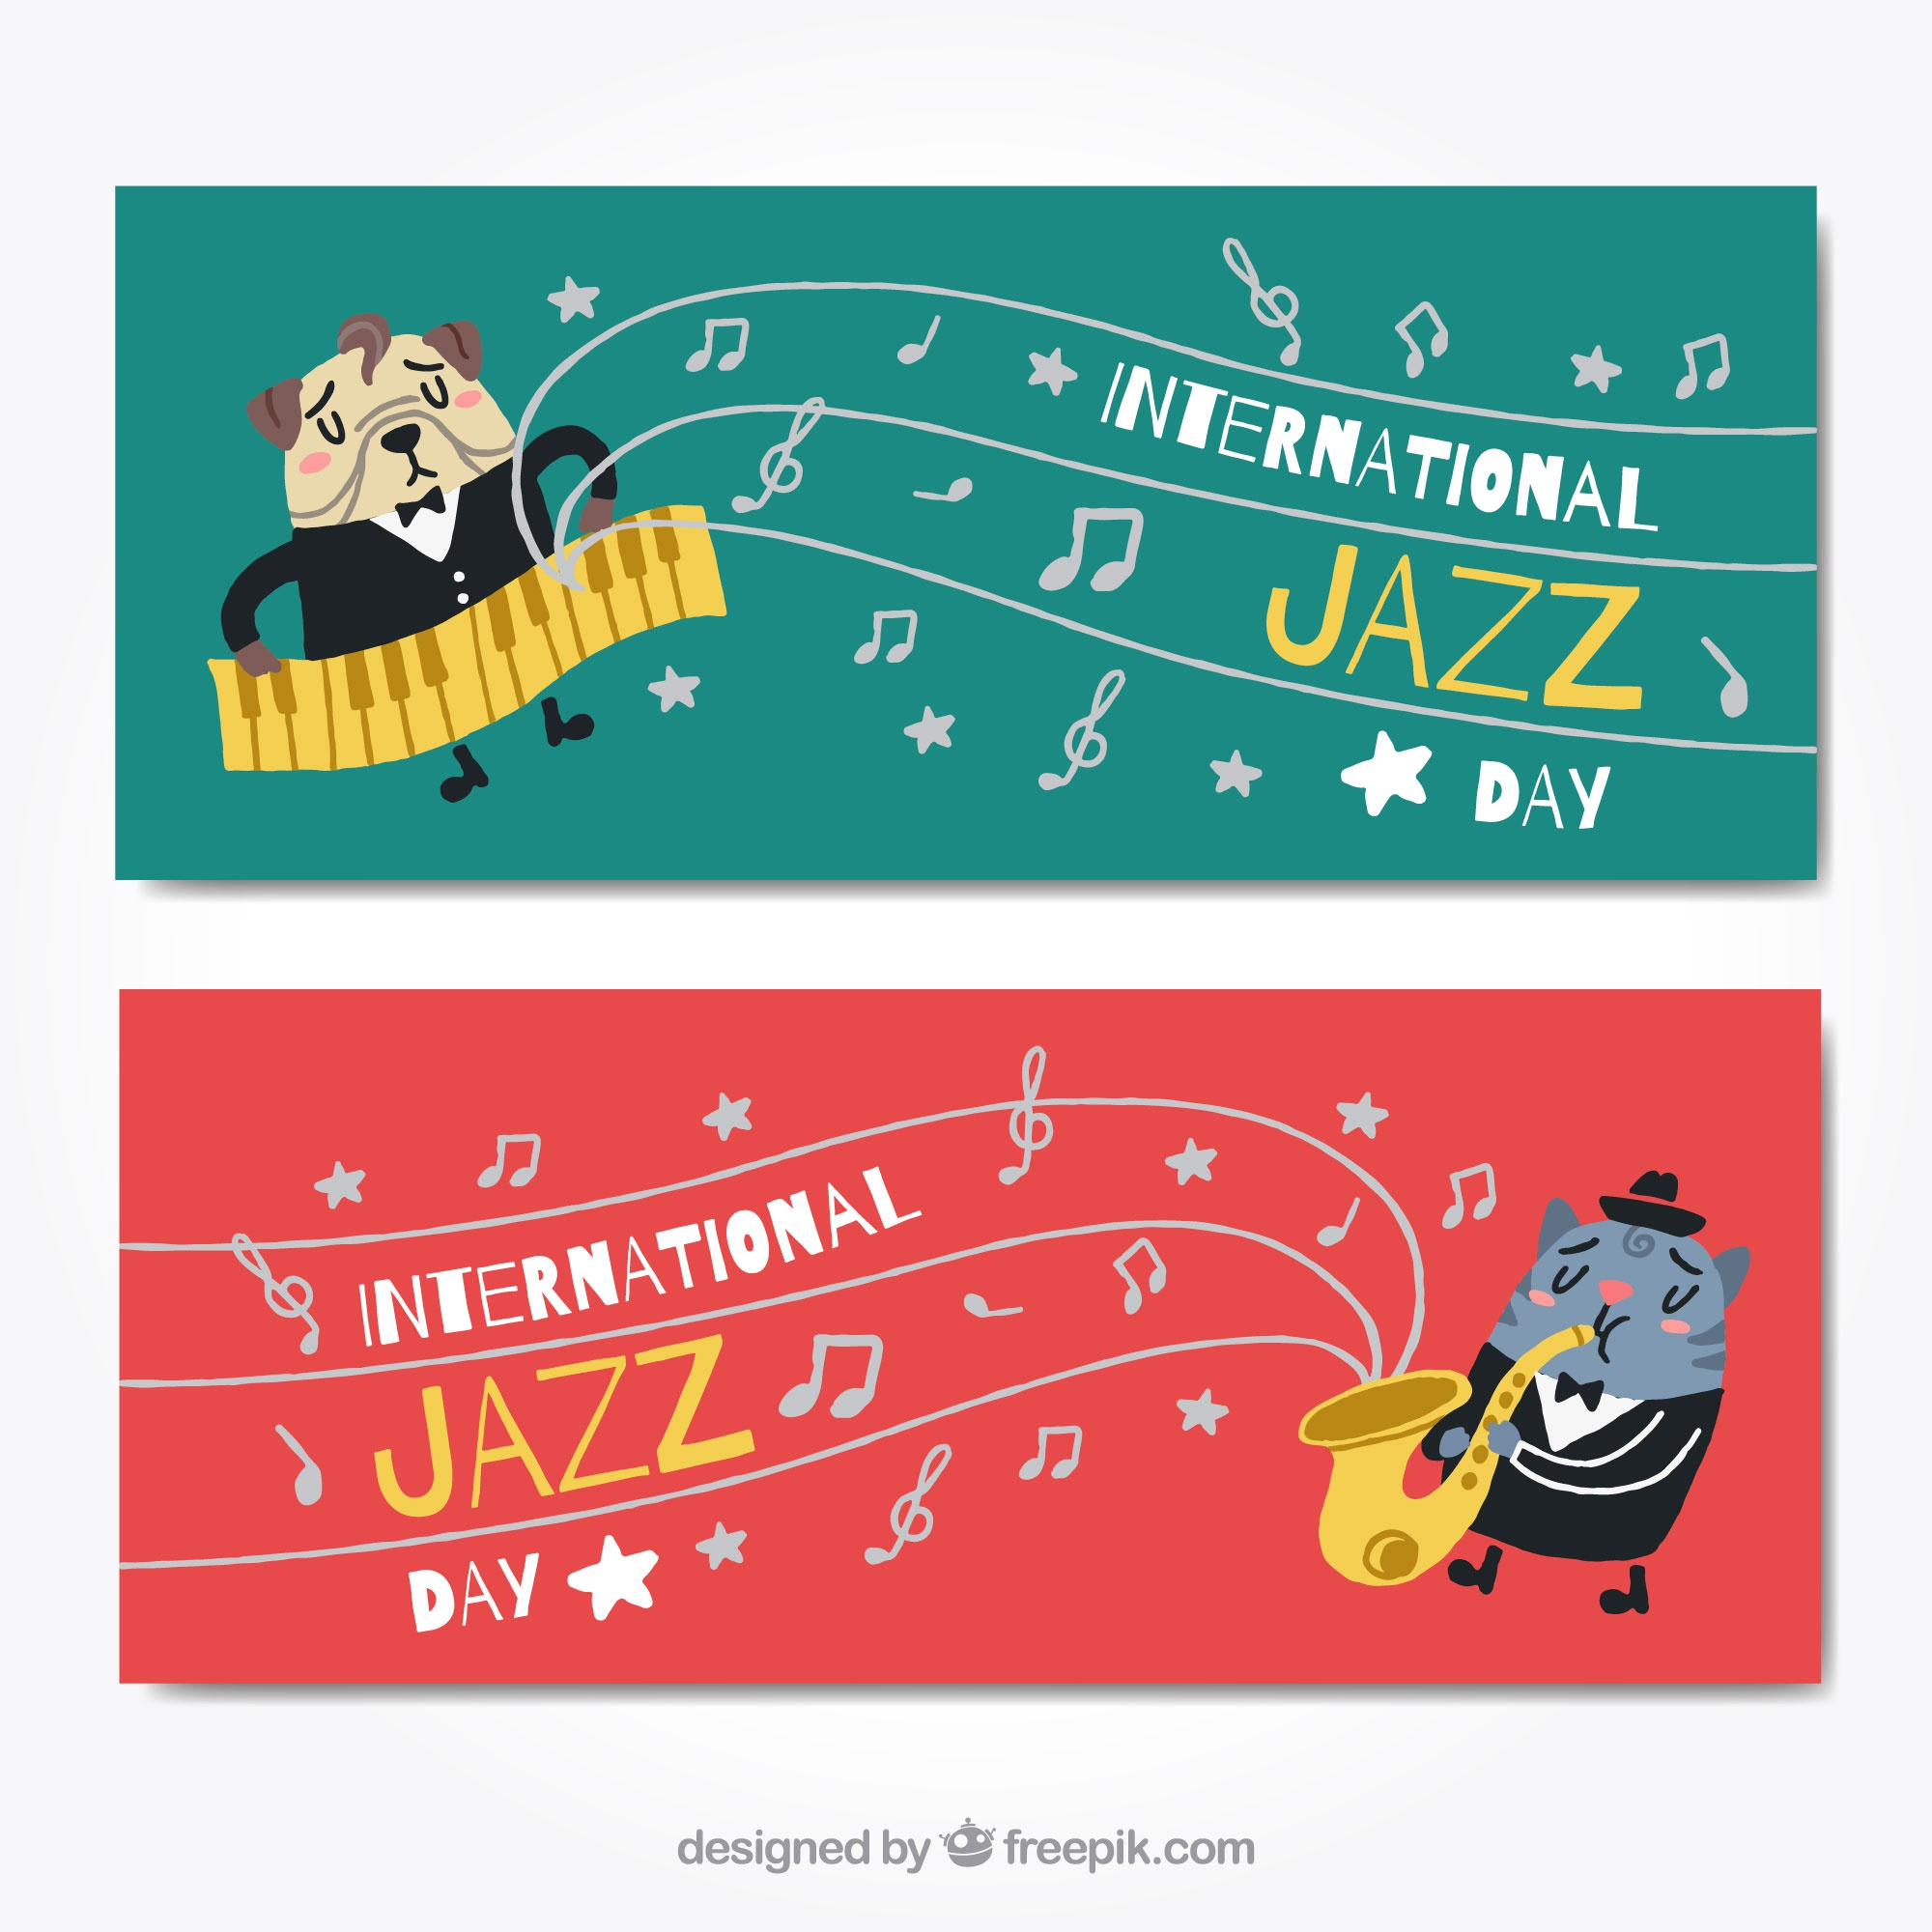 Striscioni animali e musica jazz